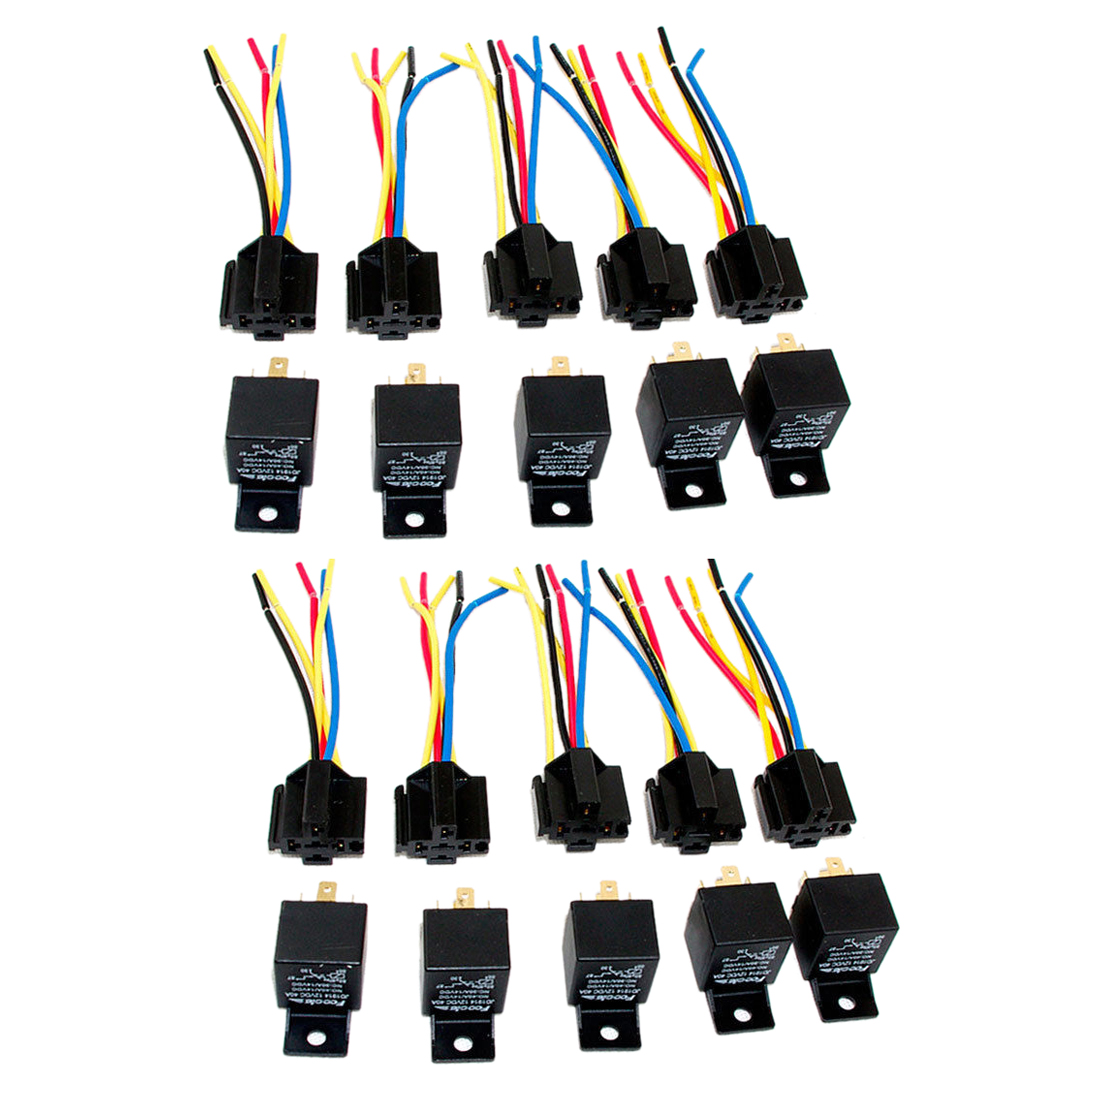 small resolution of lot10 new 12 volt 40 amp spdt automotive relay with wires harness socket in relays from home improvement on aliexpress com alibaba group